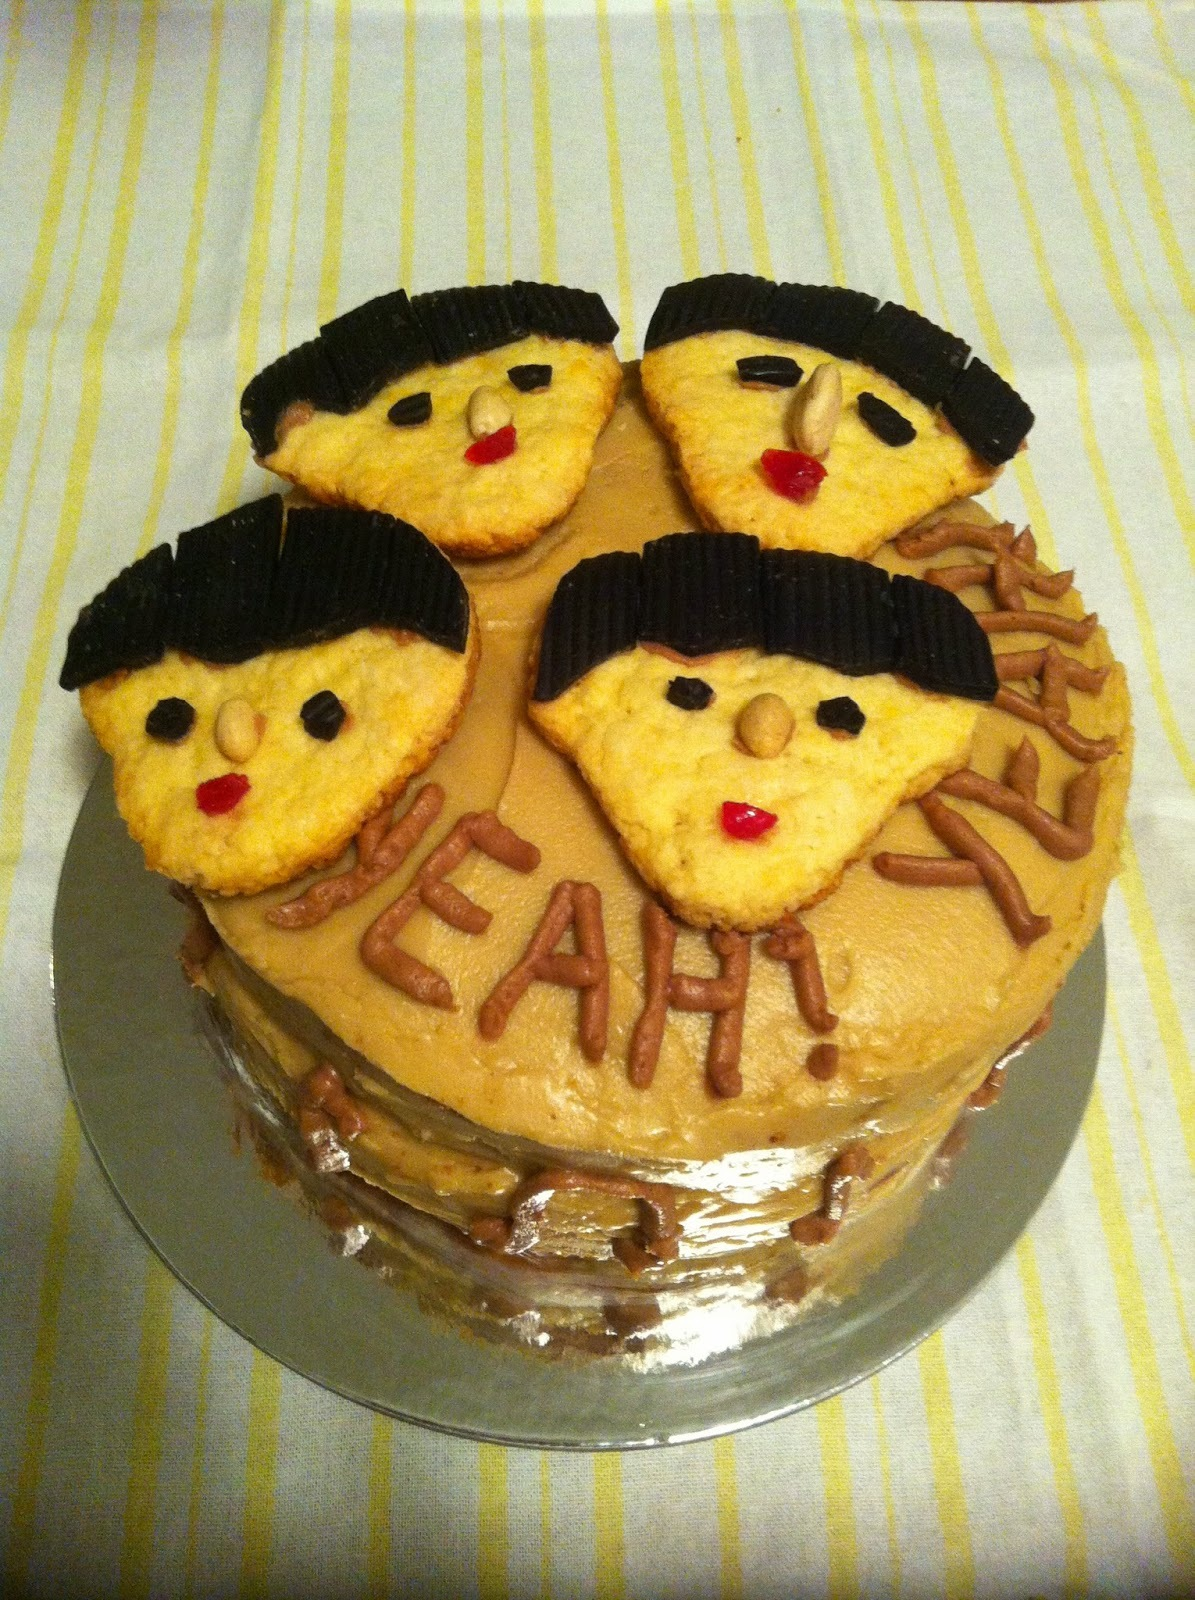 Margaret Fulton's Beatles Cake and The Meaning of Life